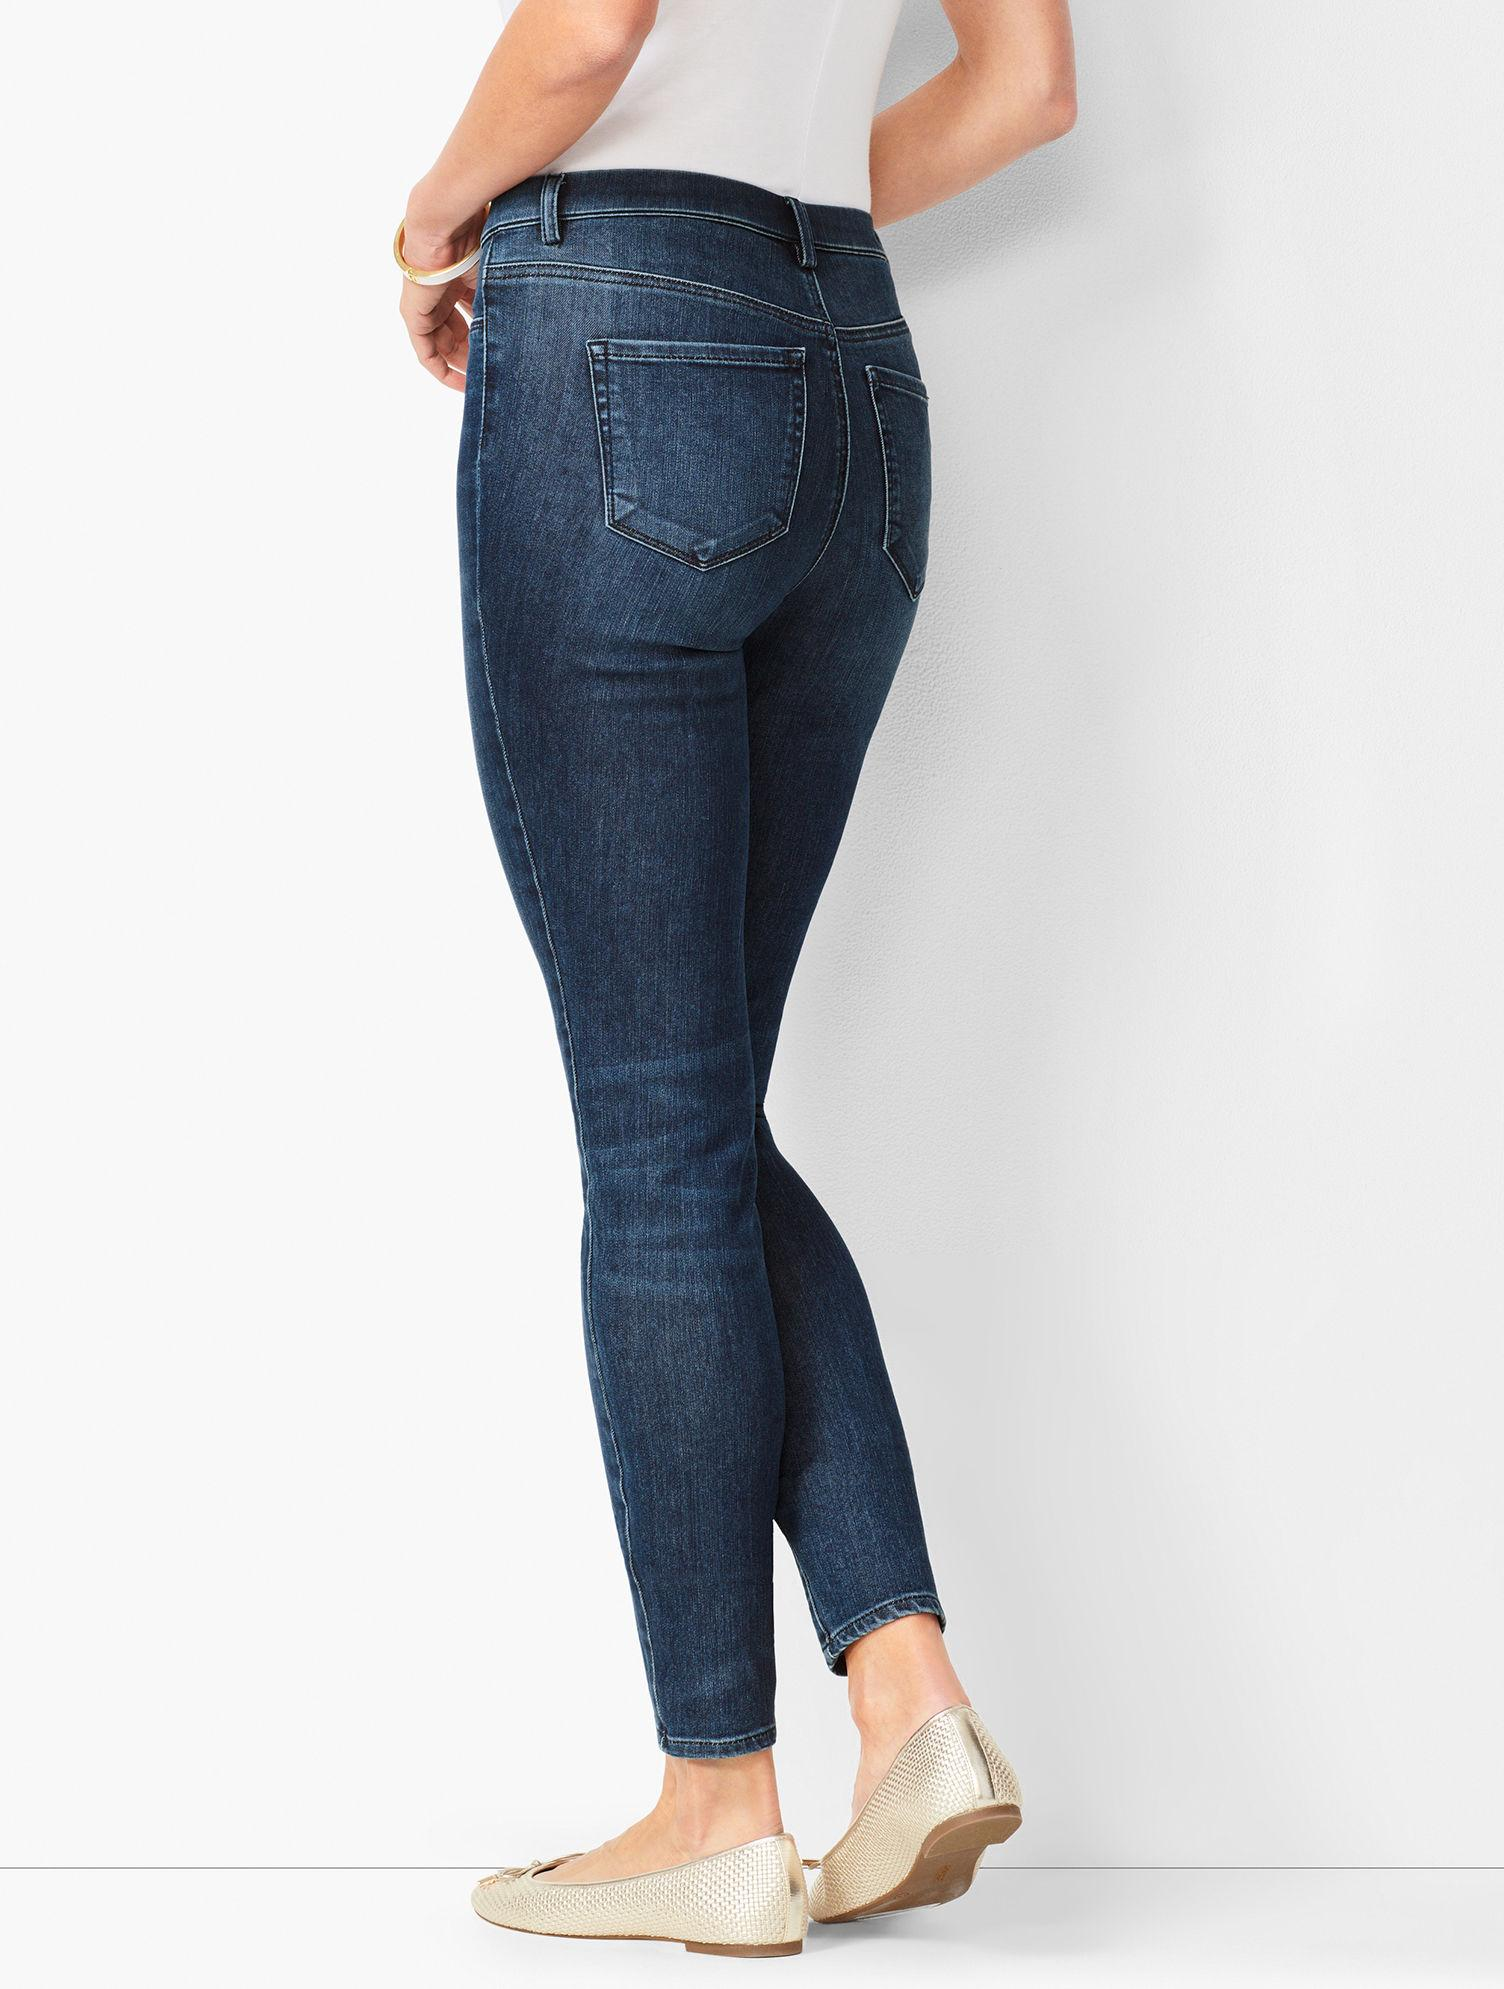 087c1ef4689a Lyst - Talbots Pull-on Jeggings in Blue